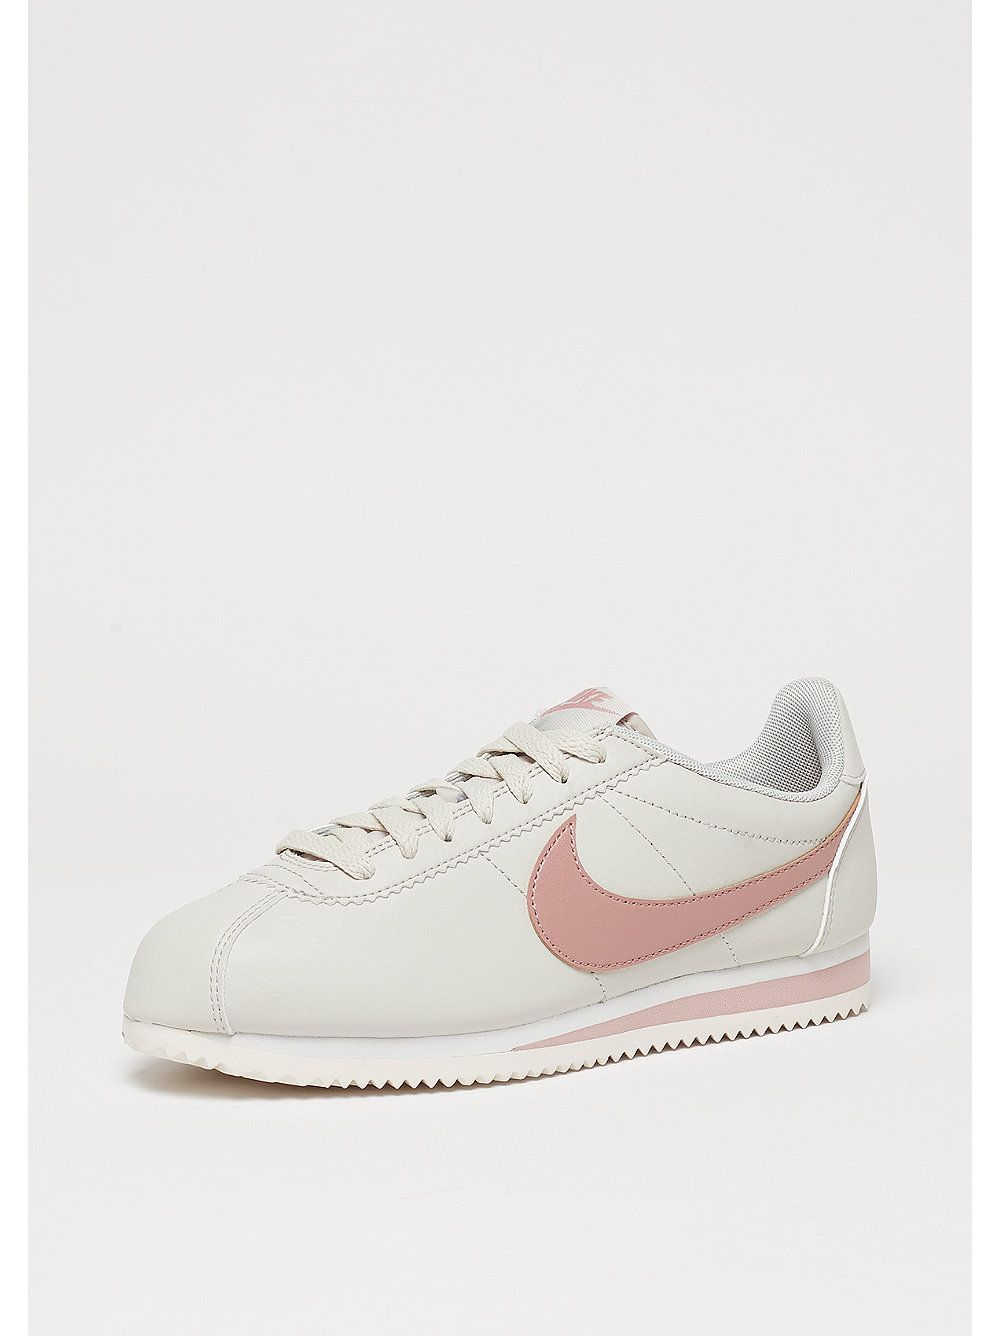 best service c6869 b1574 NIKE Wmns Classic Cortez Leather light bone particle pink summit white